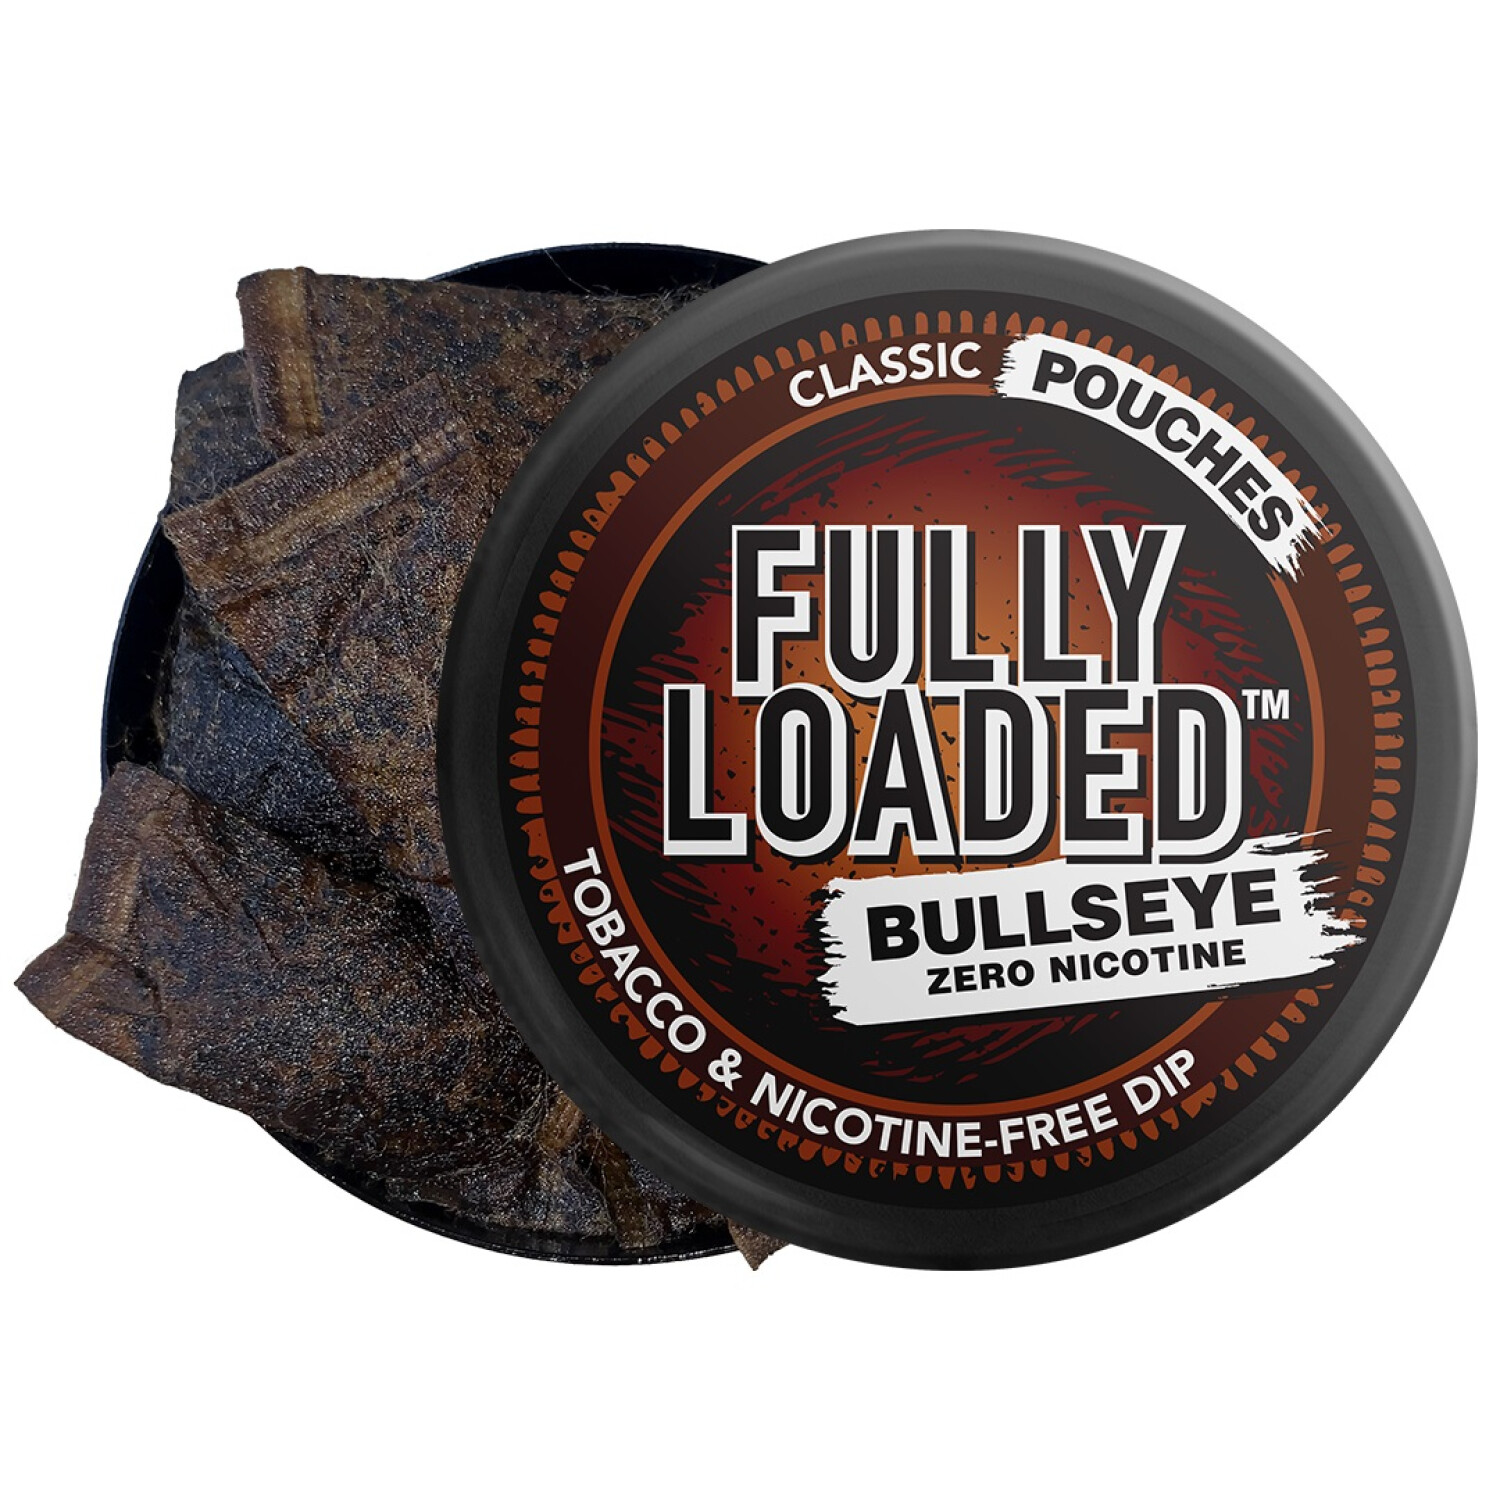 Fully Loaded Chew Tobacco and Nicotine Free Classic Bullseye Pouches Signature Flavor, Chewing Alternative